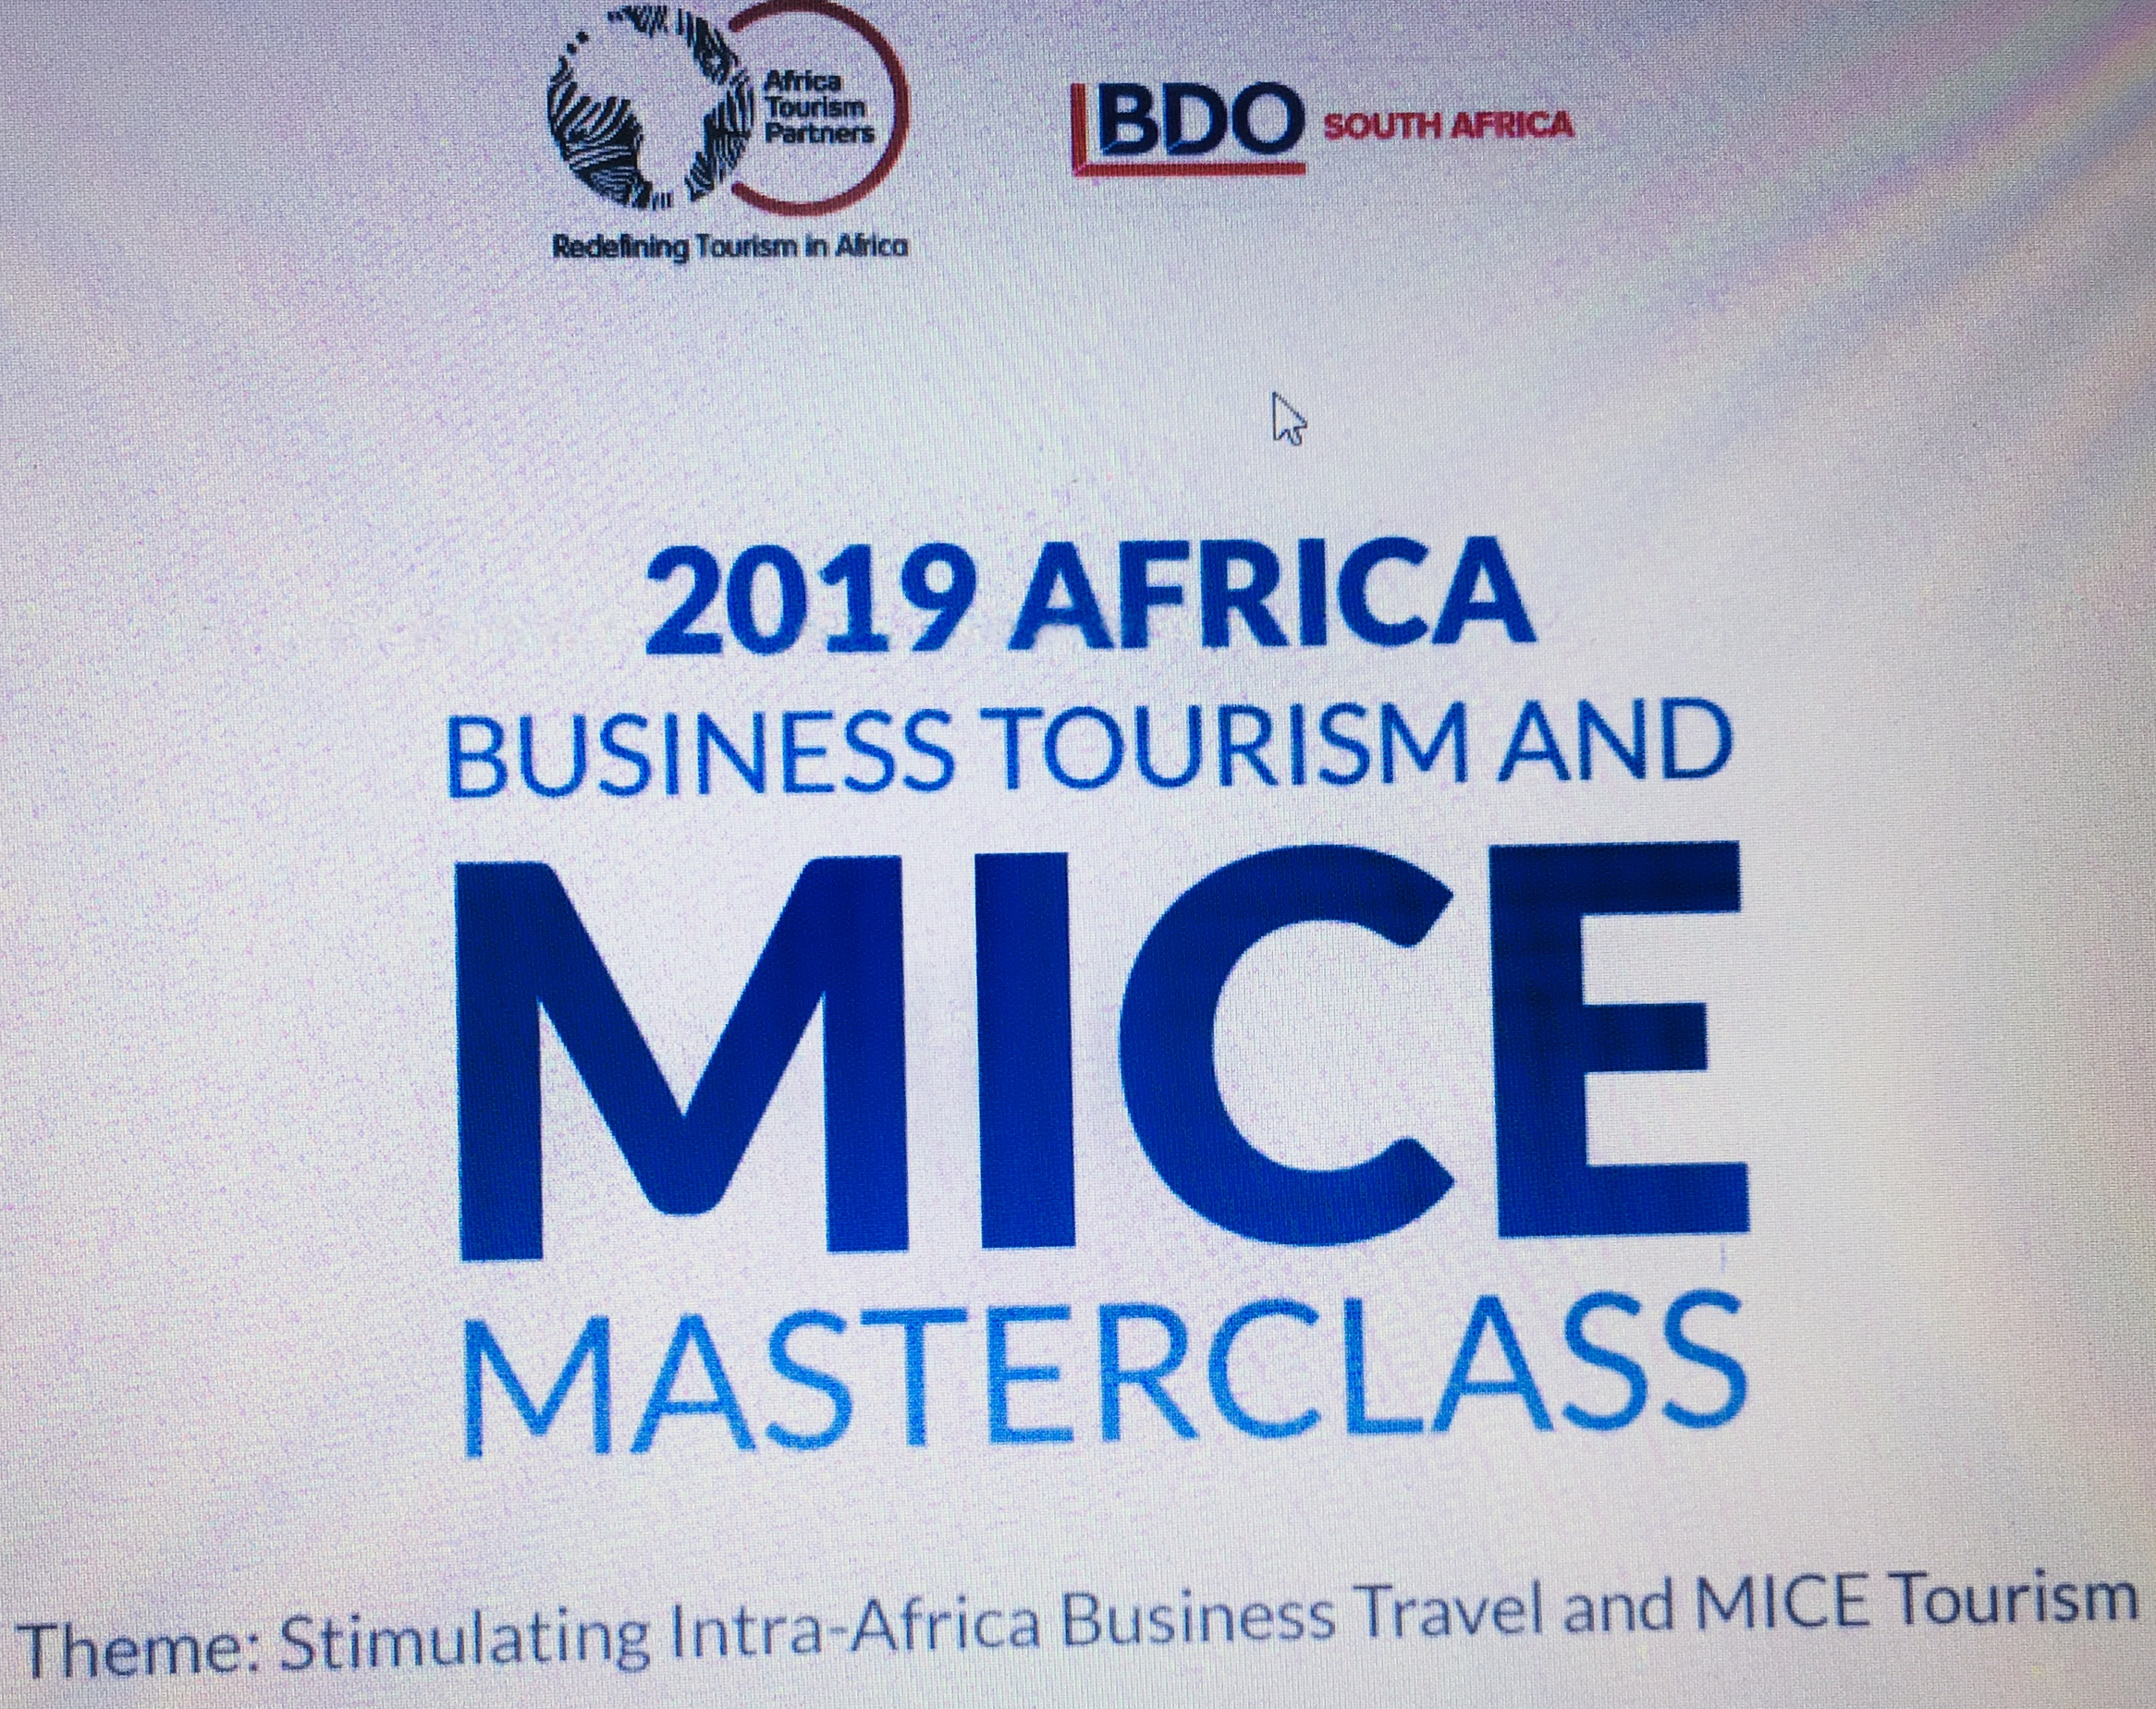 2nd annual Africa Business and MICE Tourism Master Class slated for June 10-12 in Johannesburg